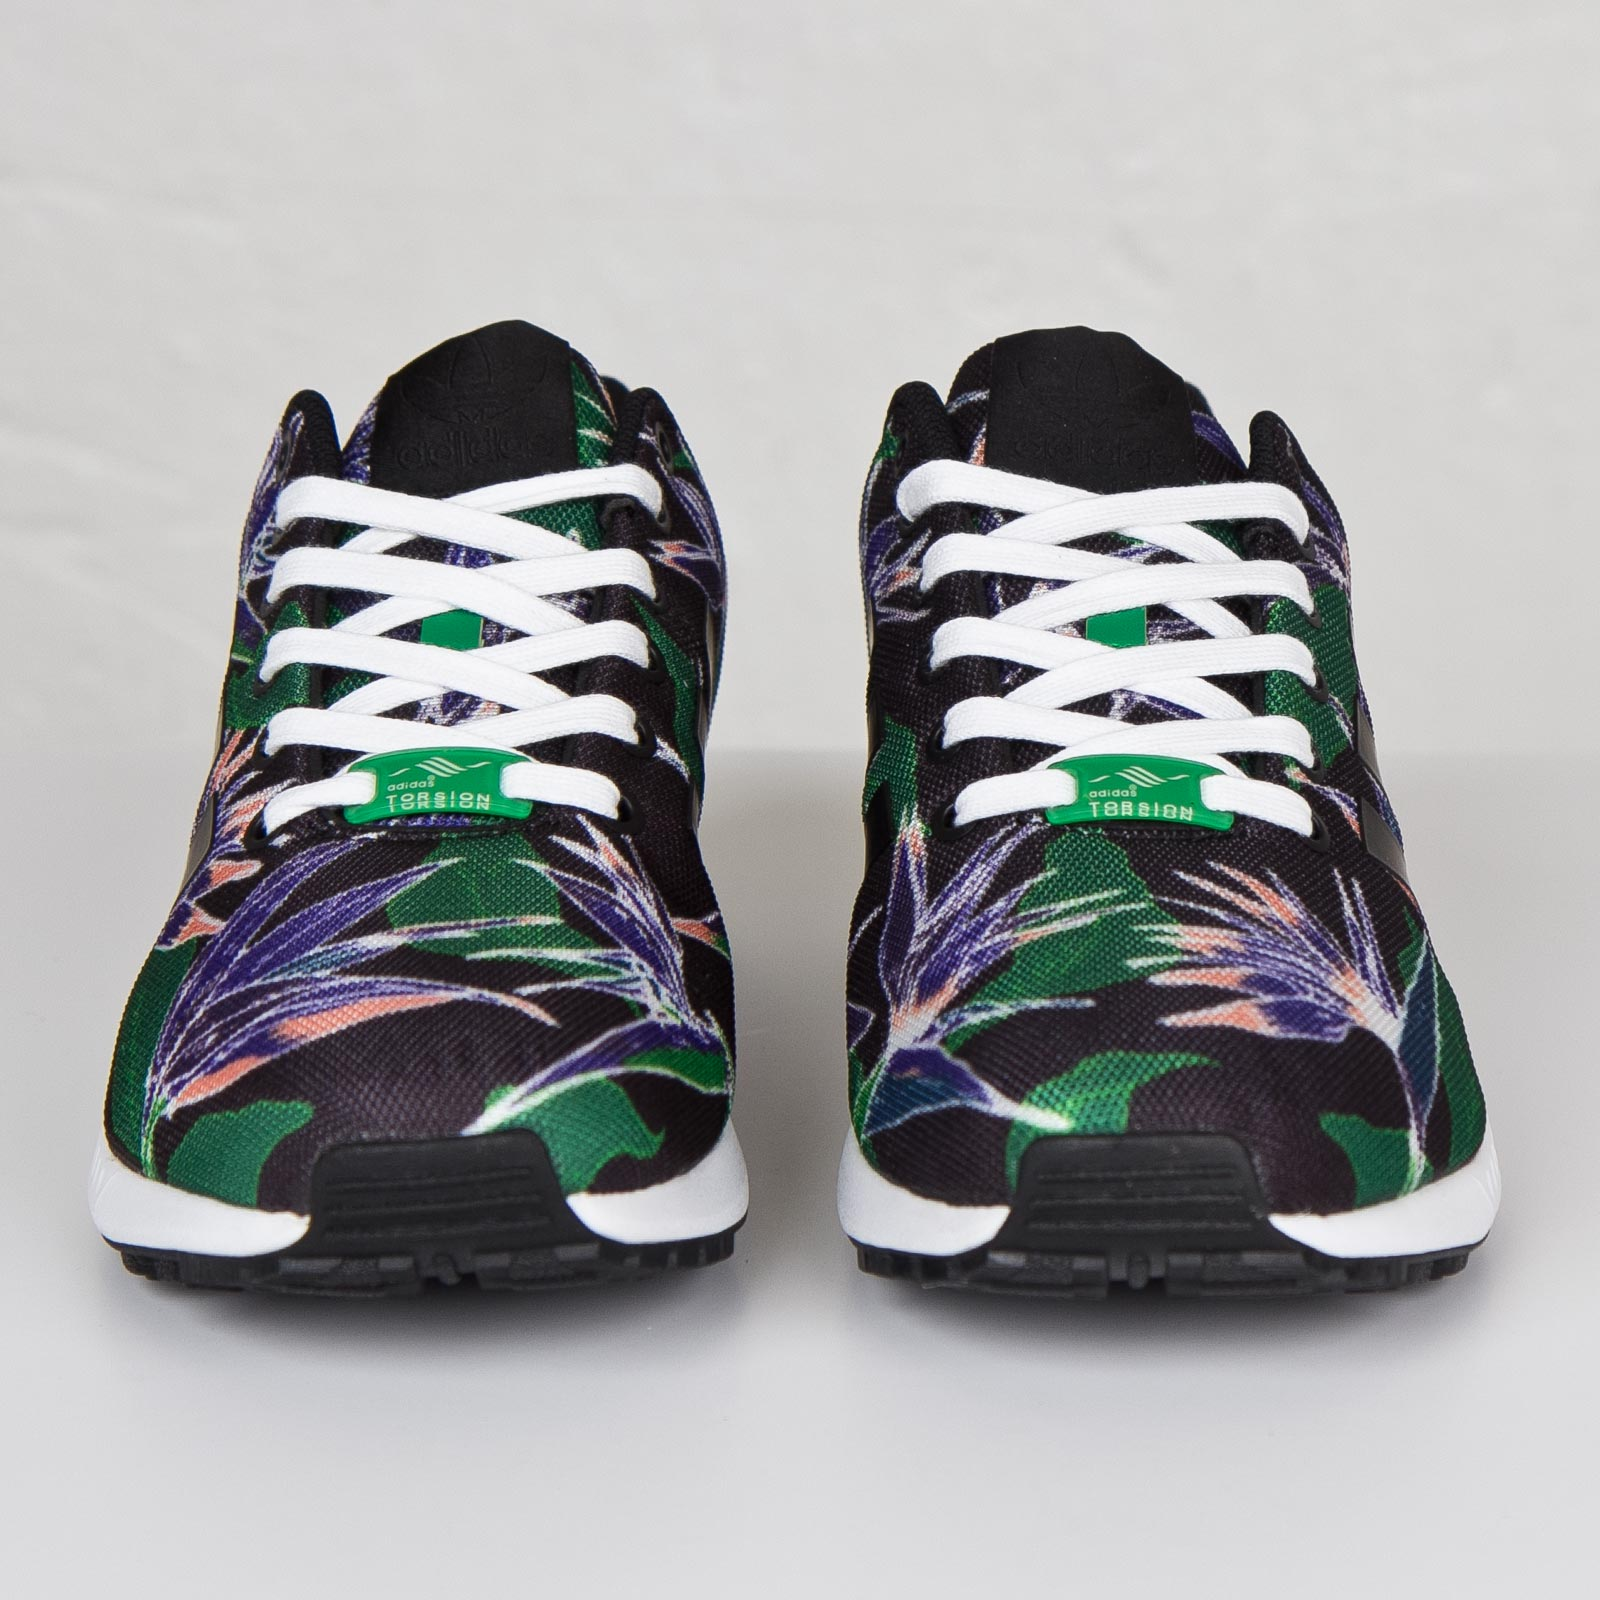 quality design e9516 efb40 adidas ZX Flux - B34518 - Sneakersnstuff | sneakers ...